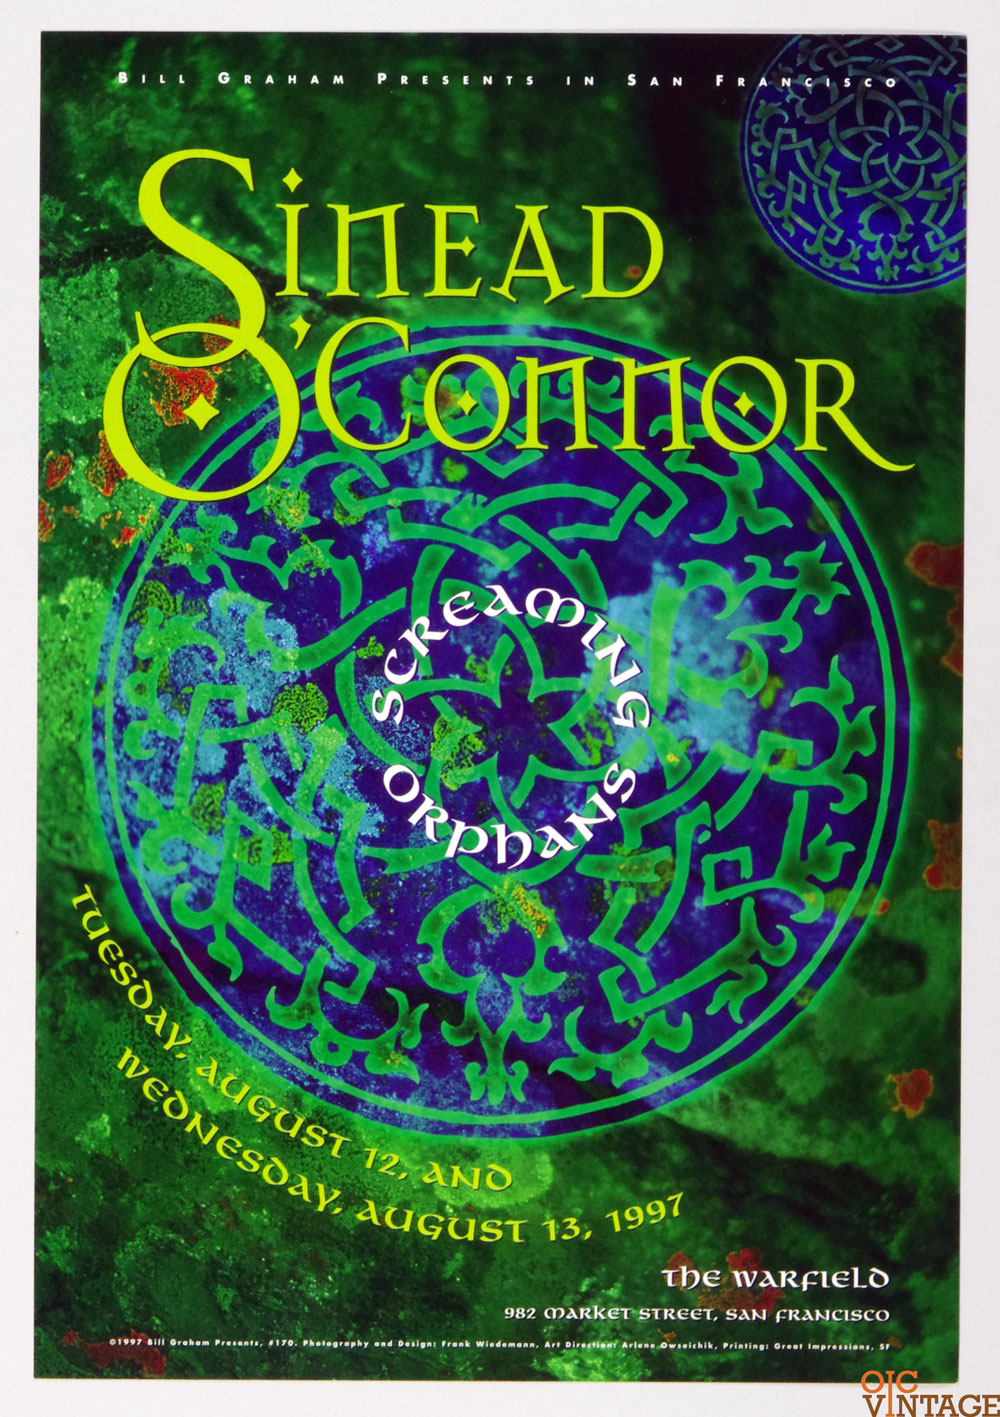 Bill Graham Presents Poster 1997 Aug 13 Sinead O'Connor Screaming Orphans #170